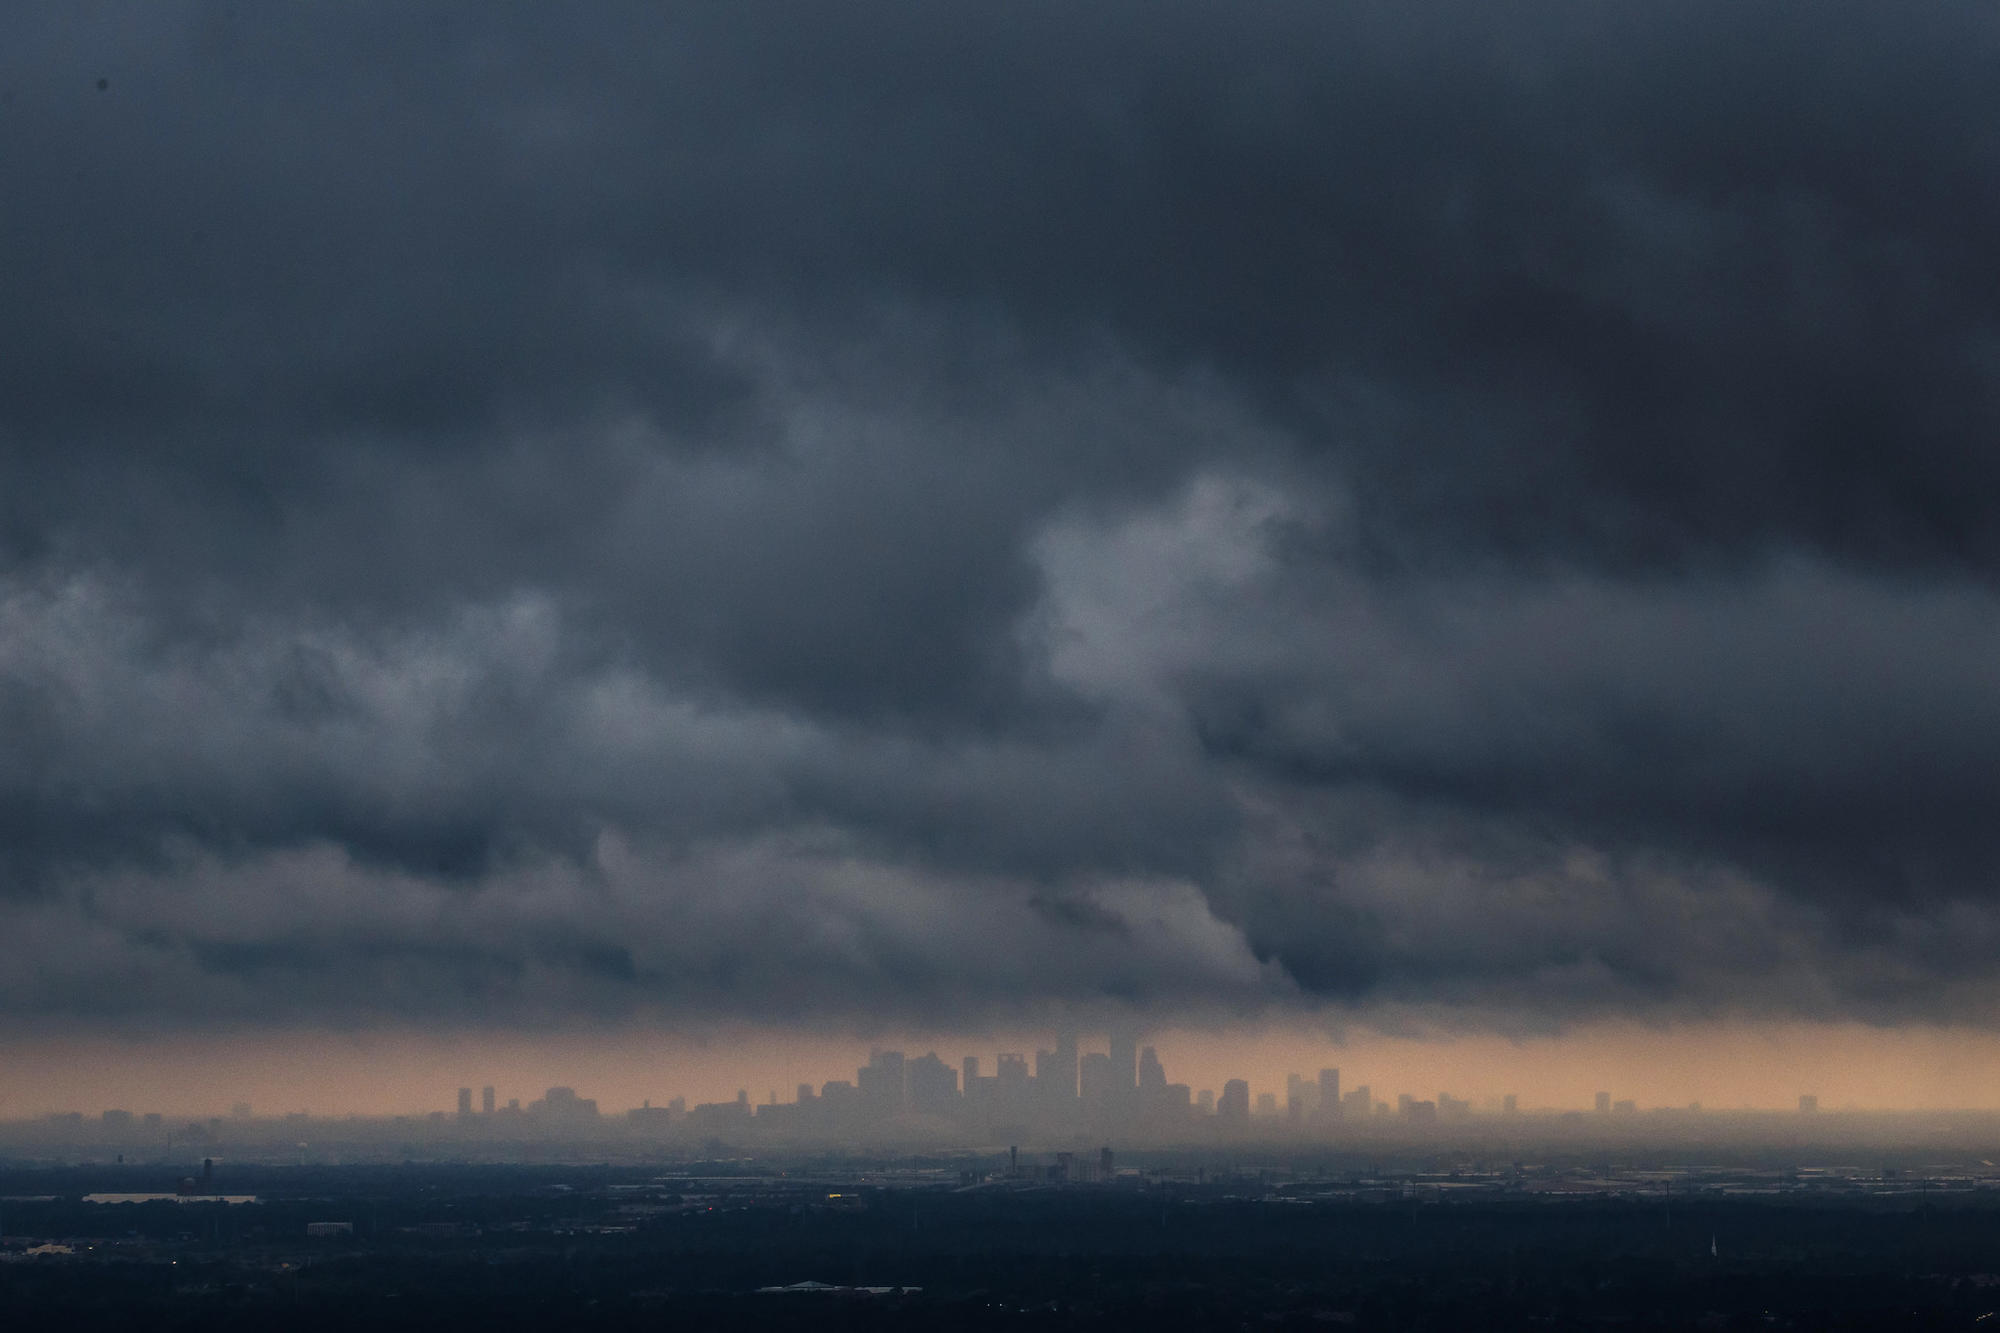 Storm clouds over Houston skyline.